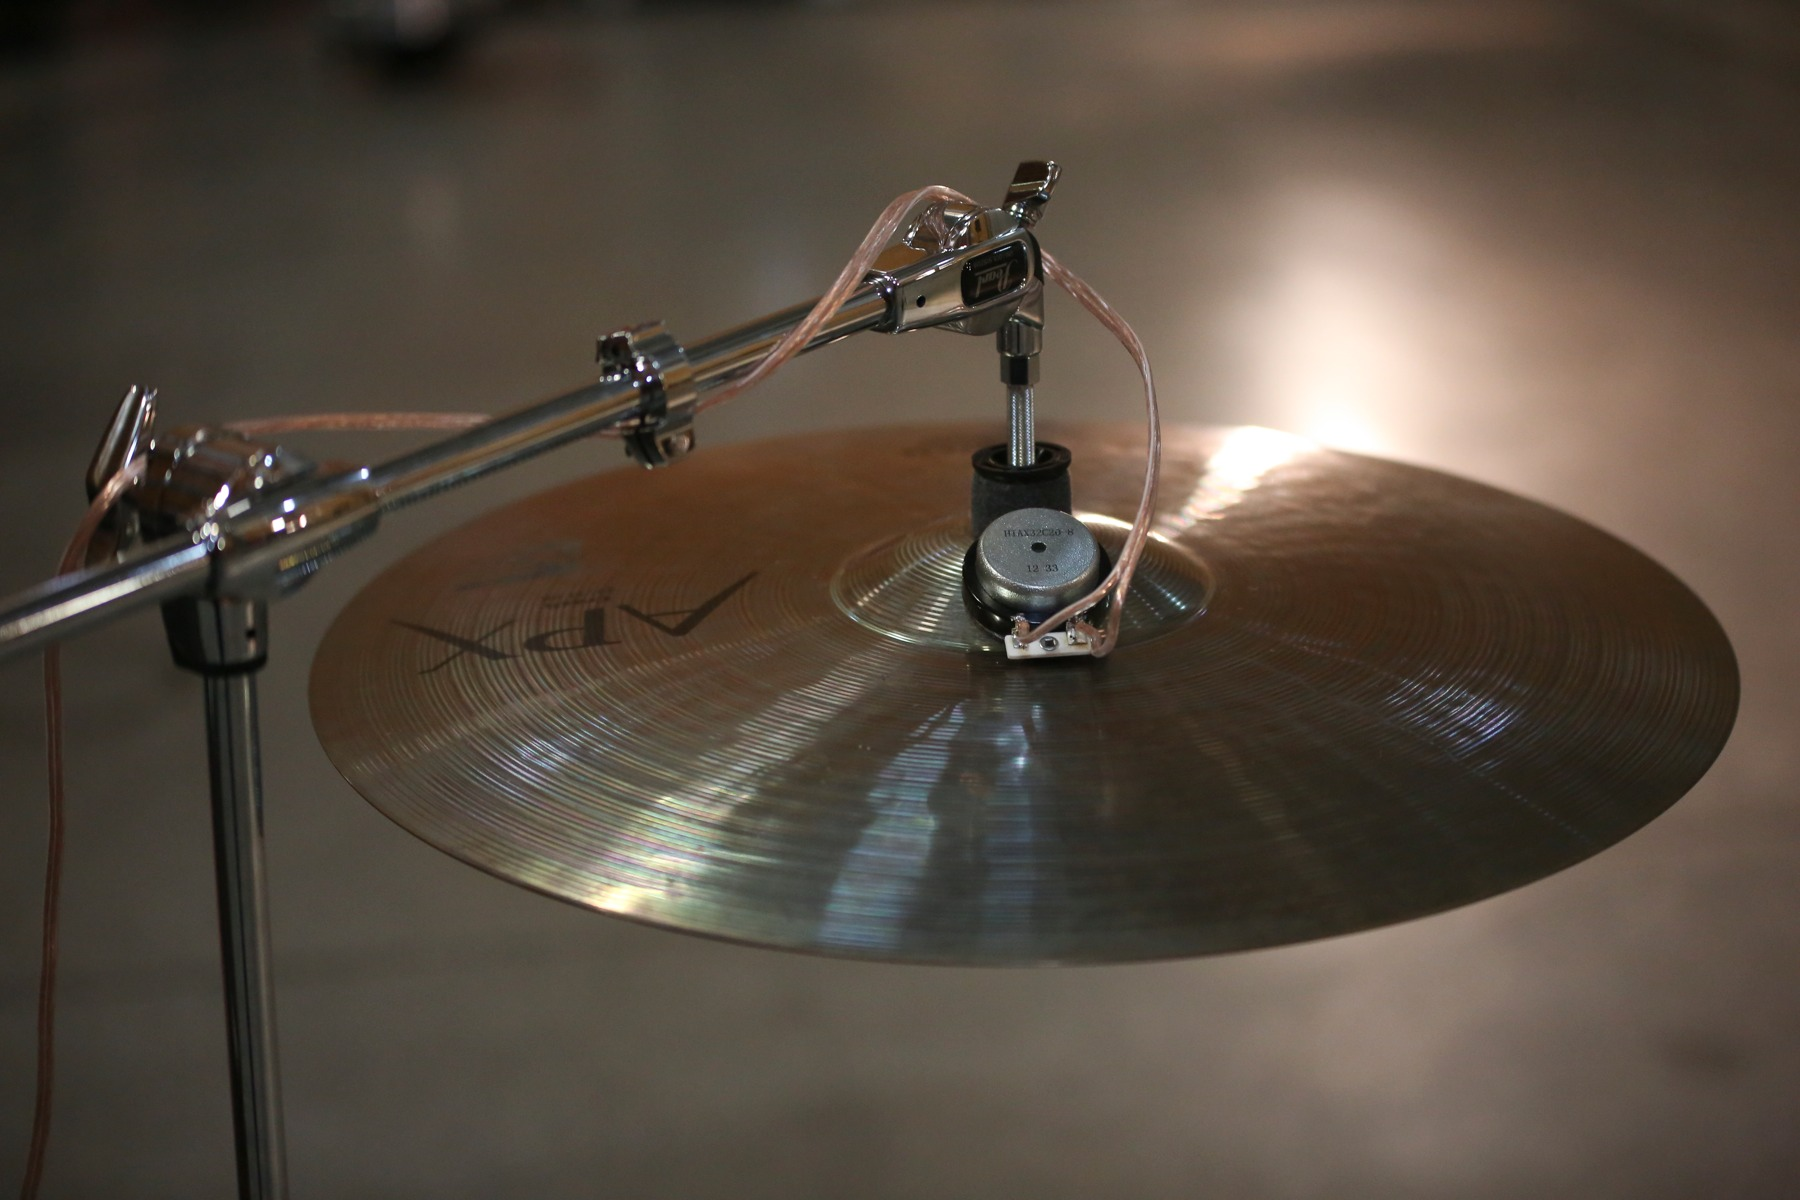 Cymbal actuator in action